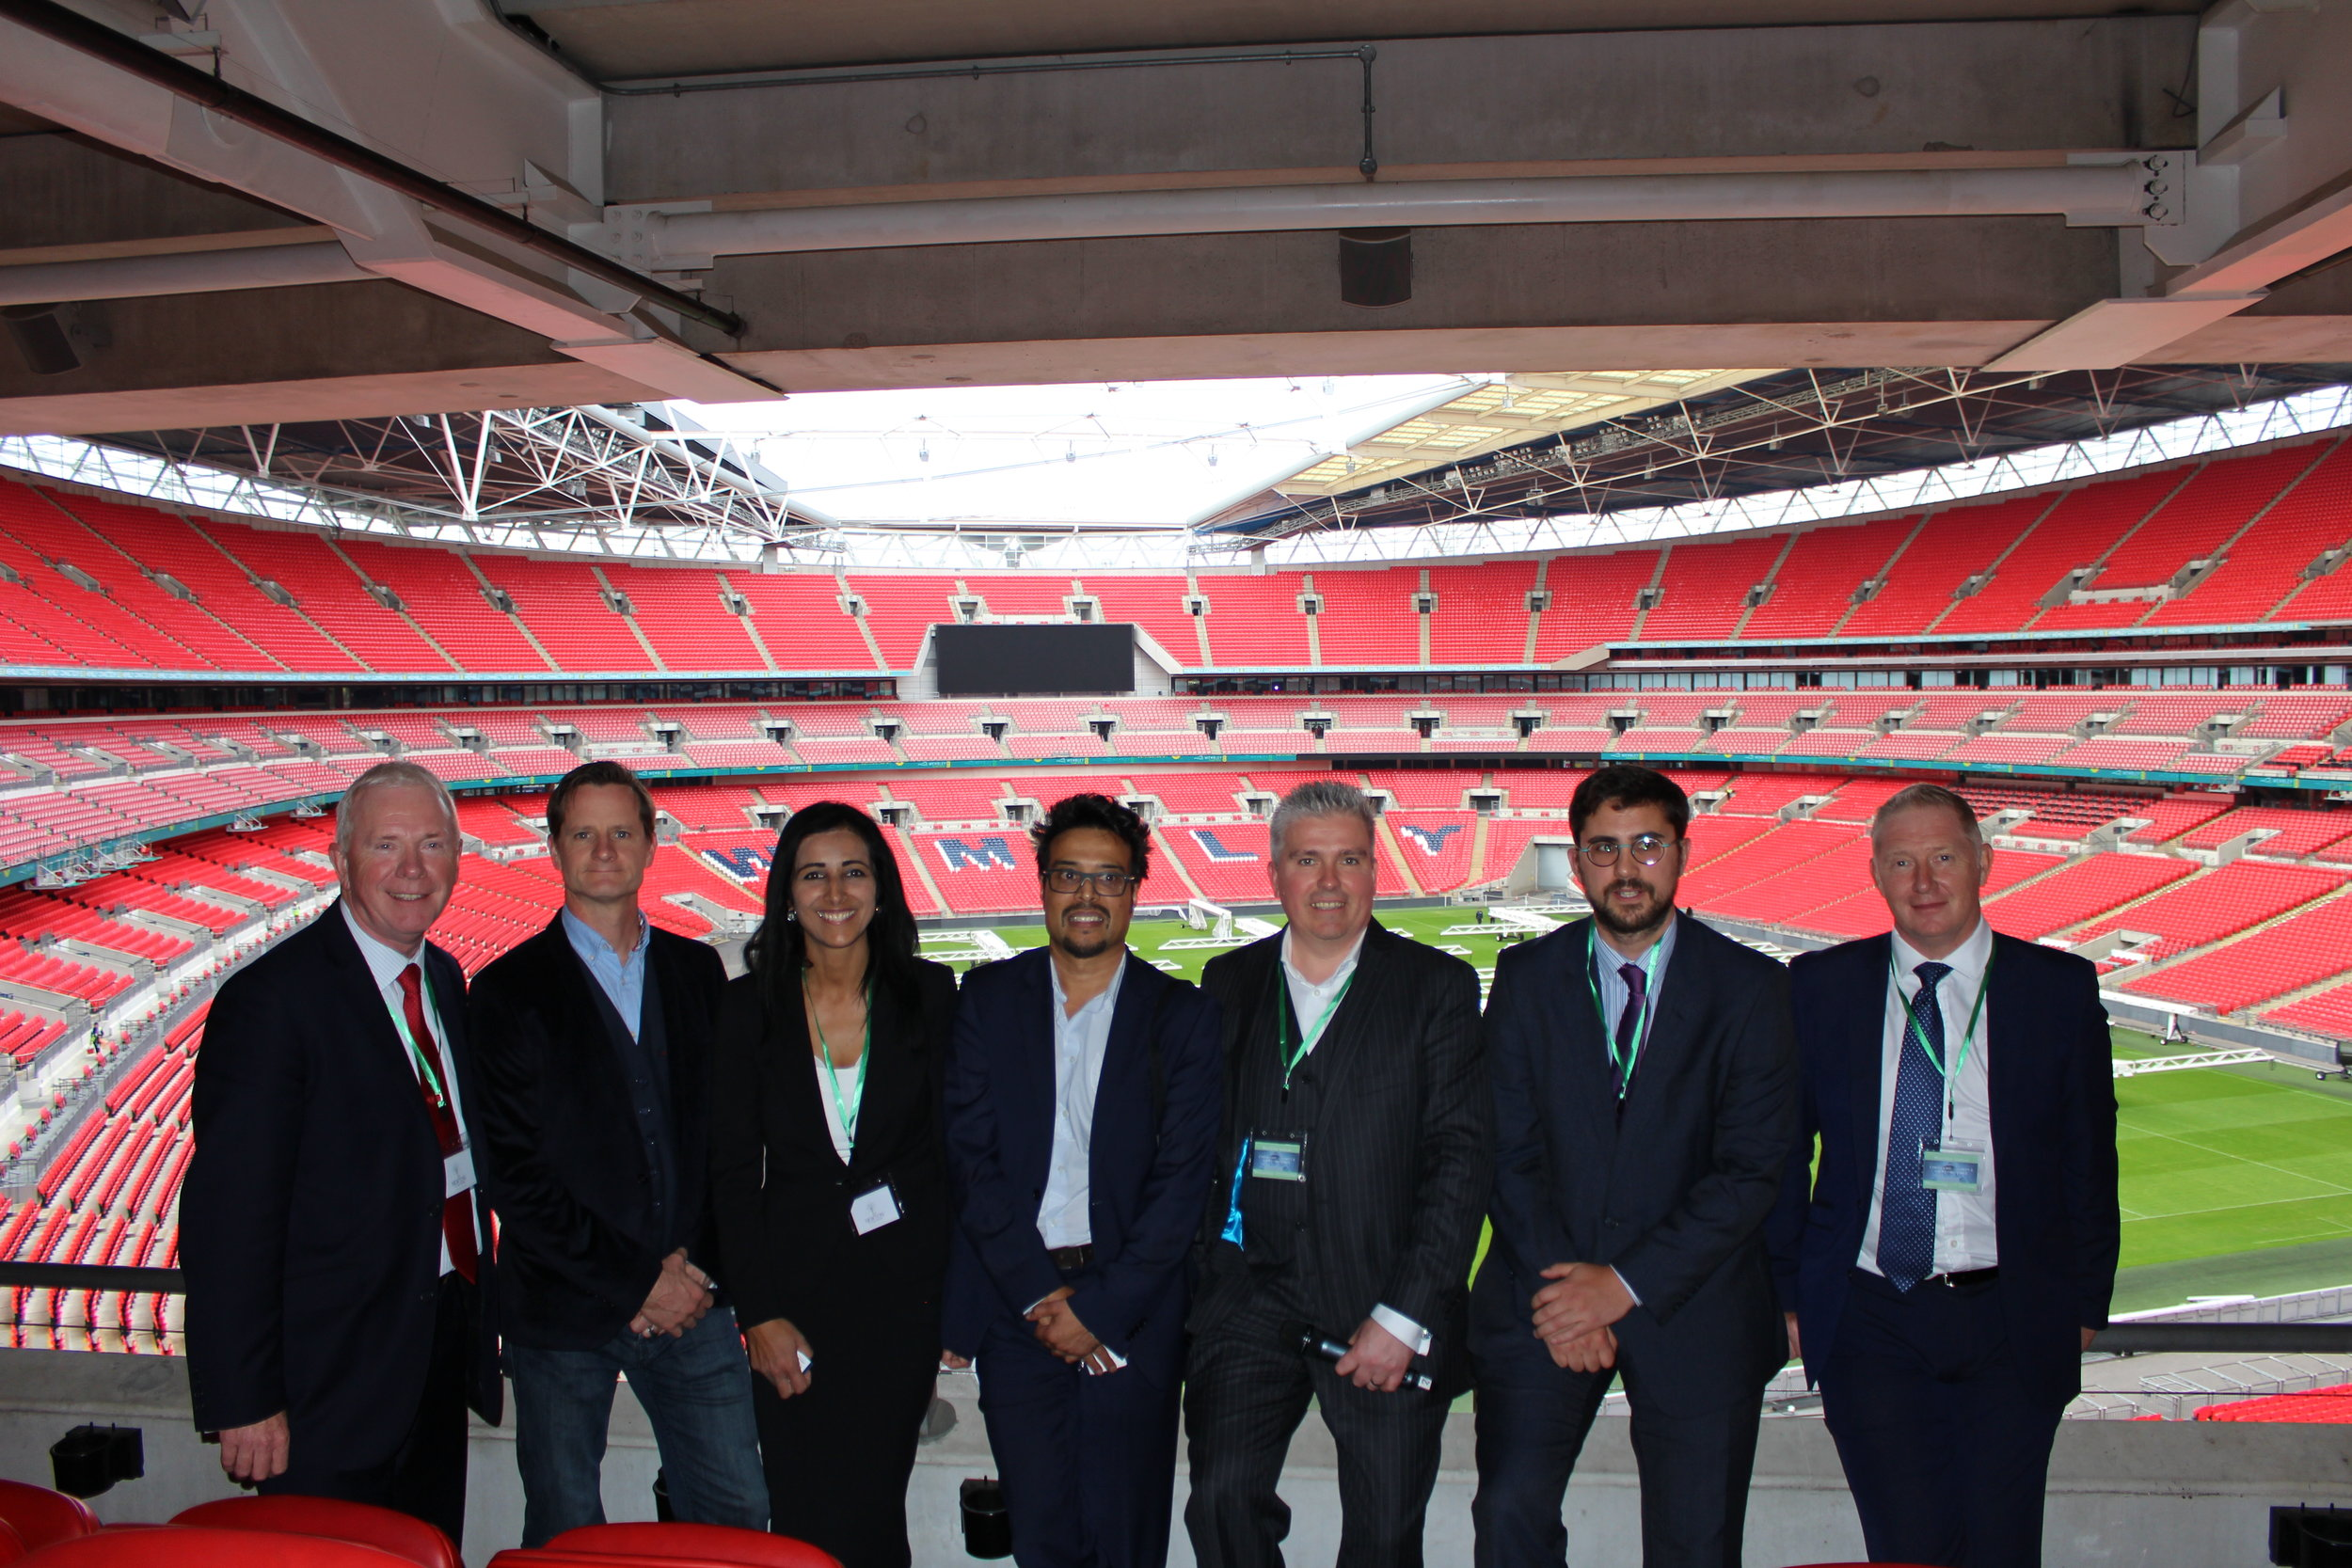 2017 Cyber Security and GDPR Conference at Wembley Stadium